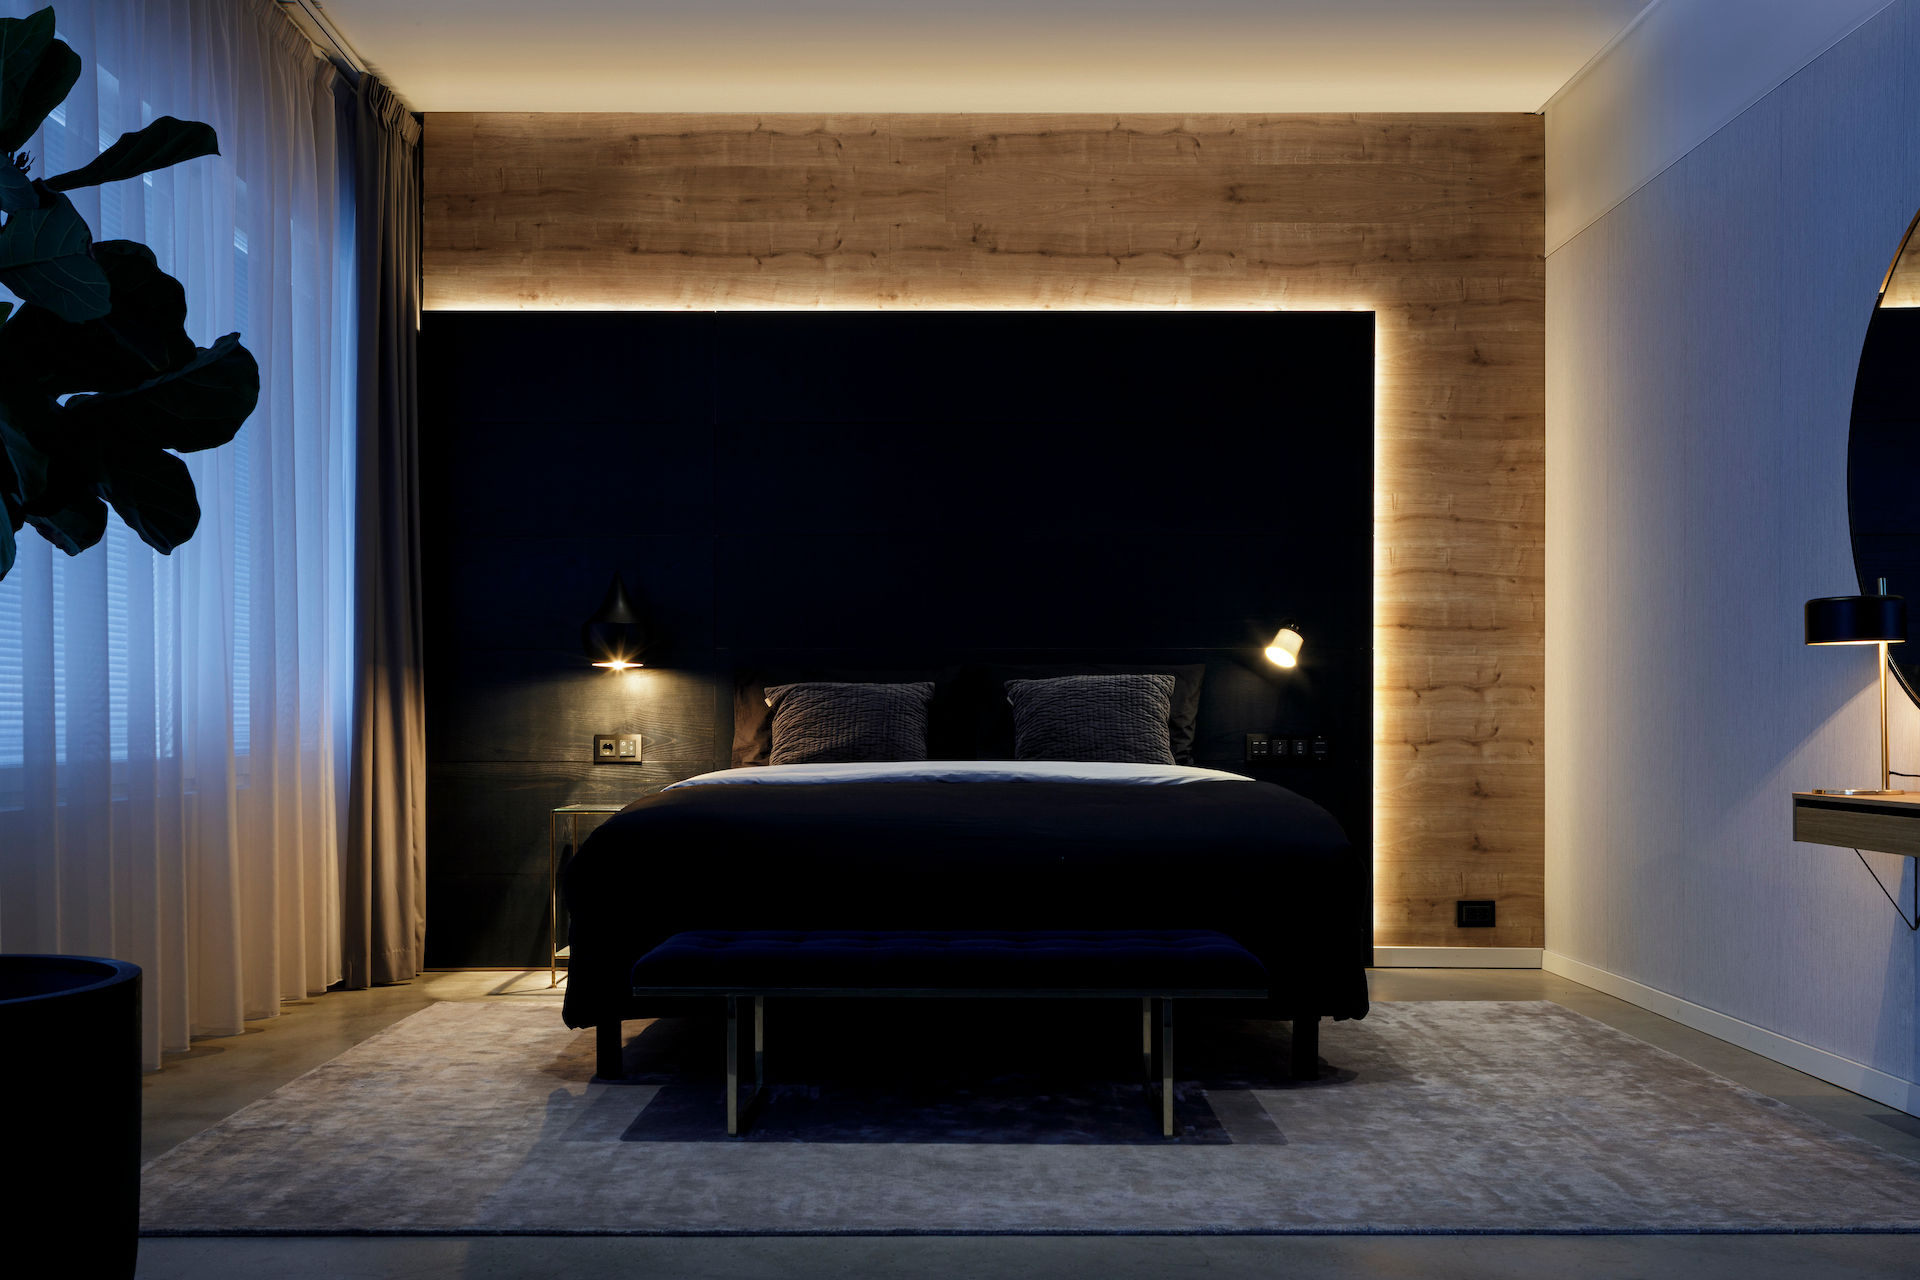 How to design and build a hotel showroom in 9 days